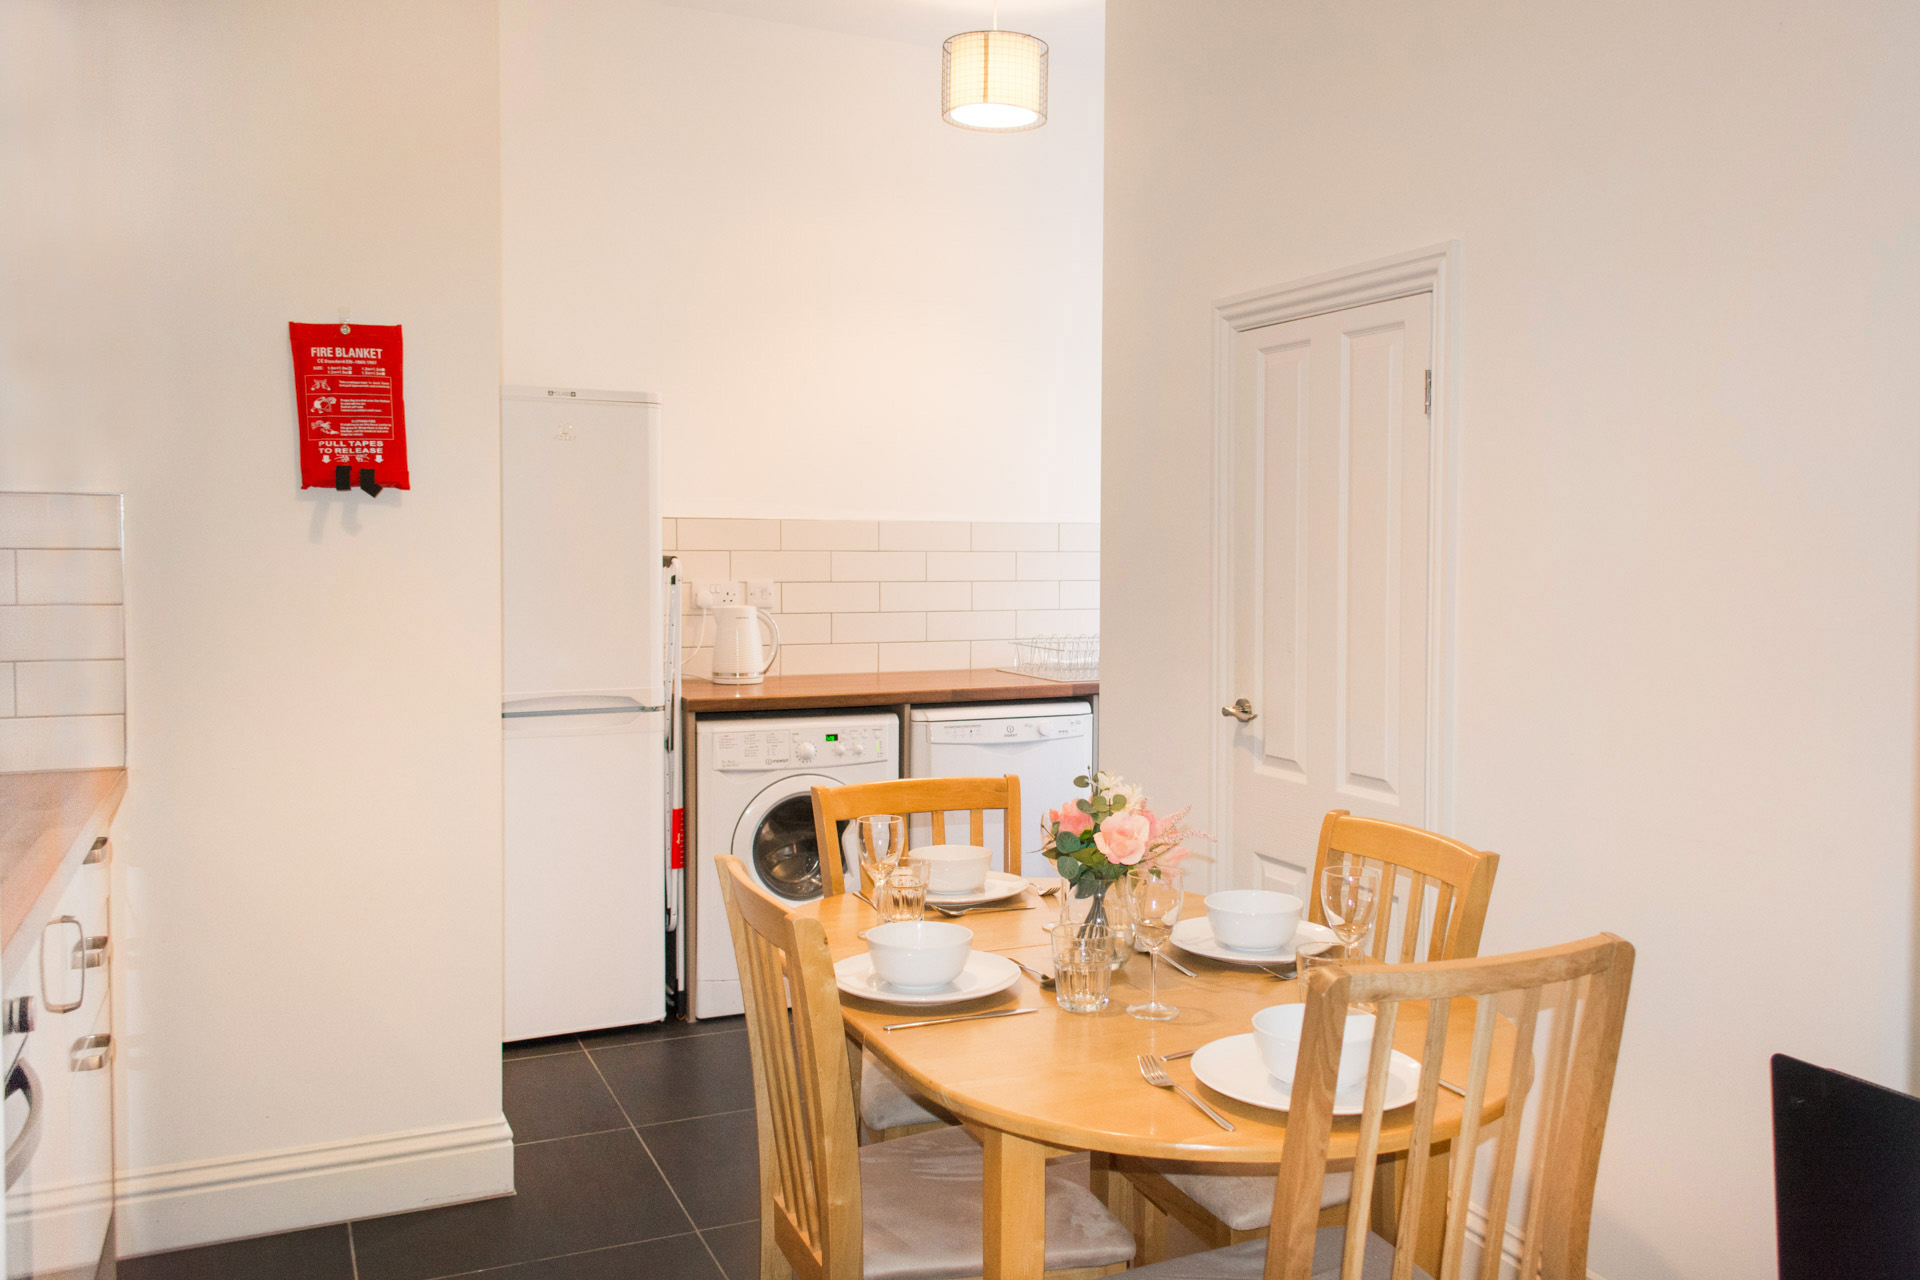 Family dining area and kitchen.